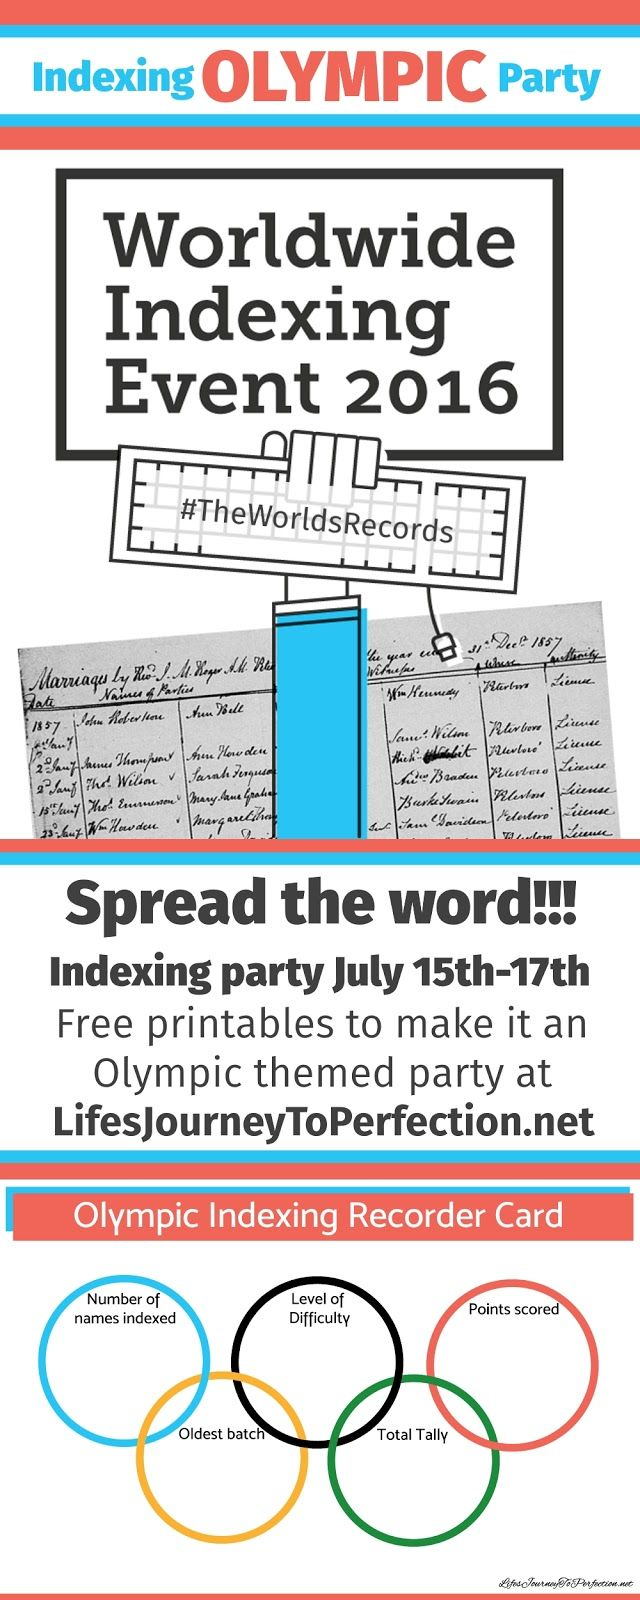 Life's Journey To Perfection: Indexing Olympic Party...A Worldwide Indexing Event!